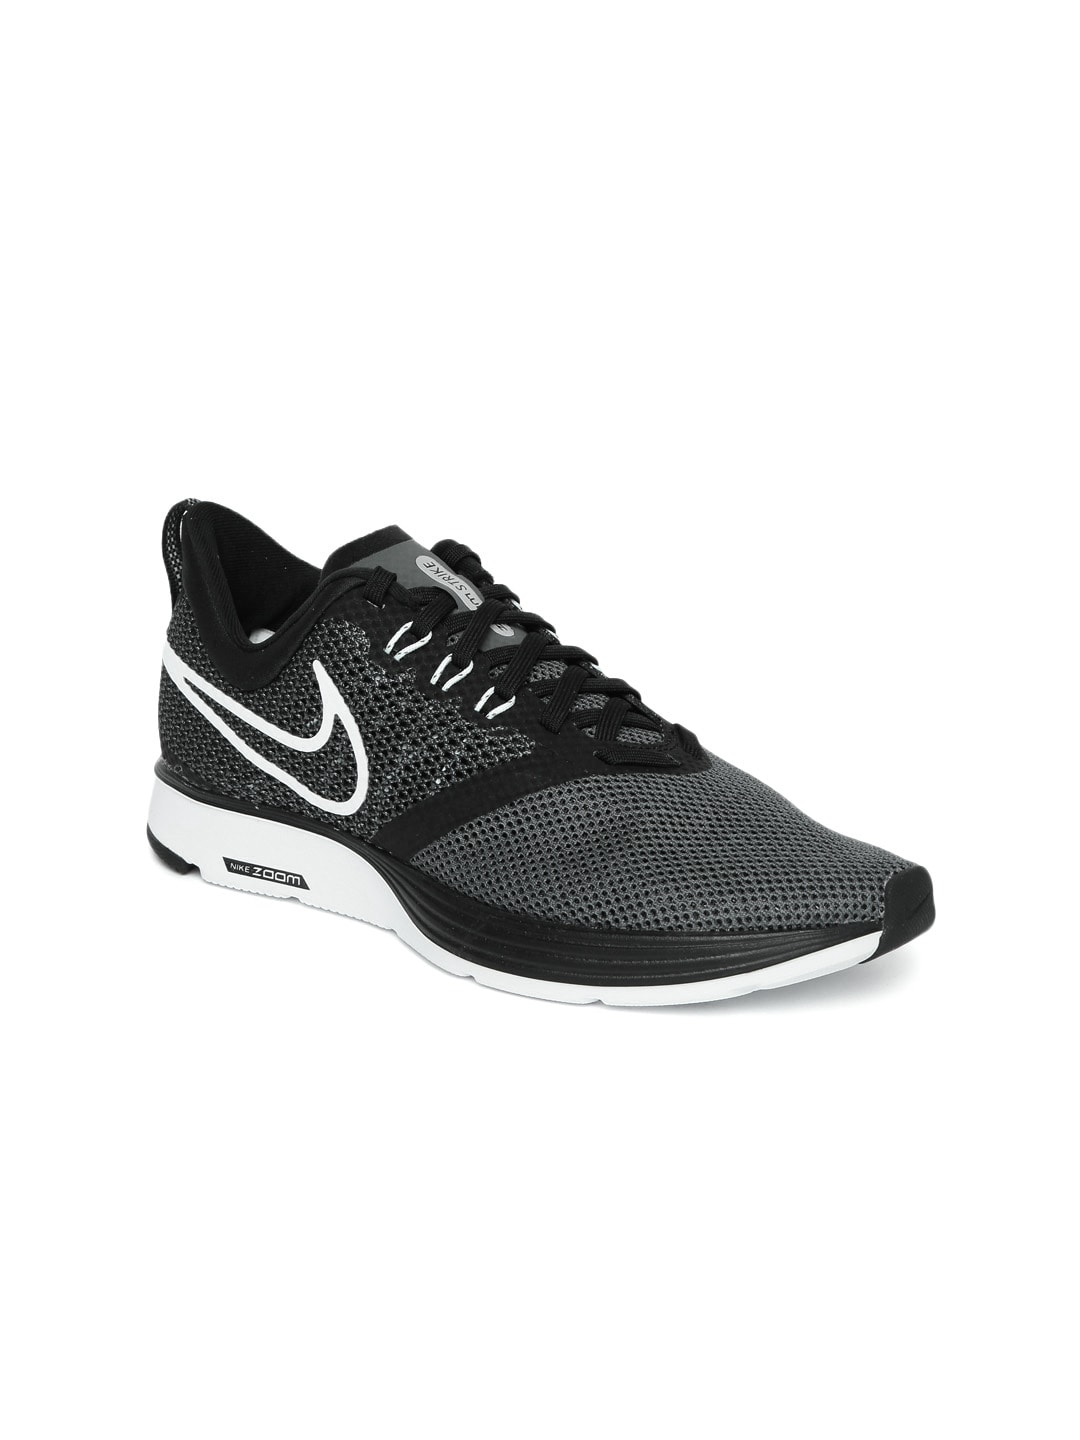 buy popular 7c5ae d7096 Nike Running Shoes - Buy Nike Running Shoes Online   Myntra